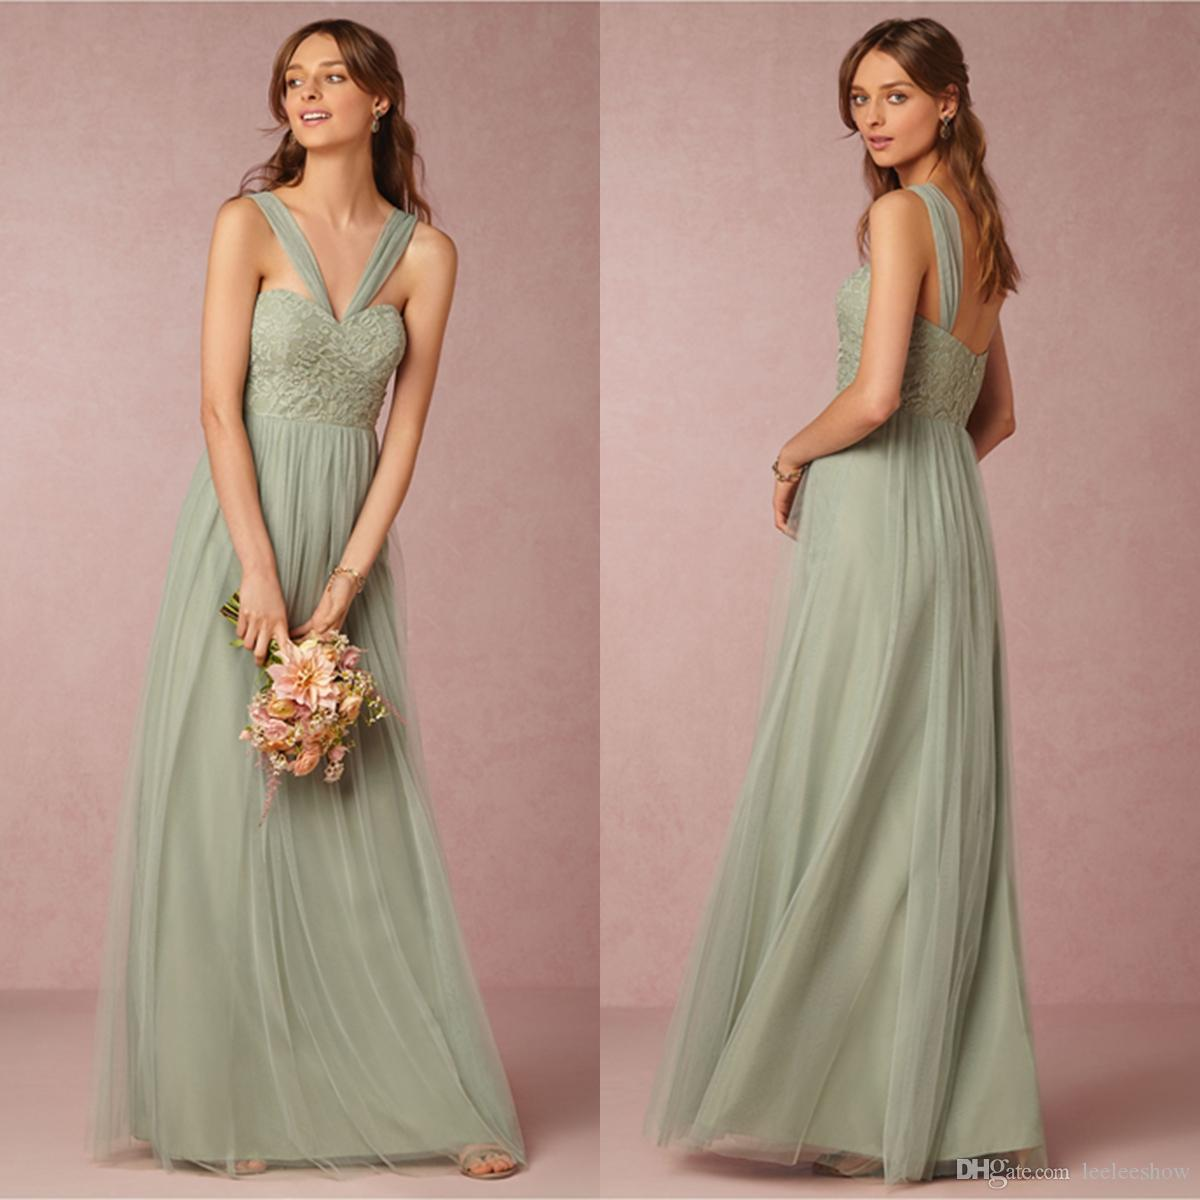 Sage convertible dress bridesmaid dress green tulle removable sage convertible dress bridesmaid dress green tulle removable strap long sweetheart formal dresses cheap 2014 bhldn wedding party dresses white dresses ombrellifo Gallery